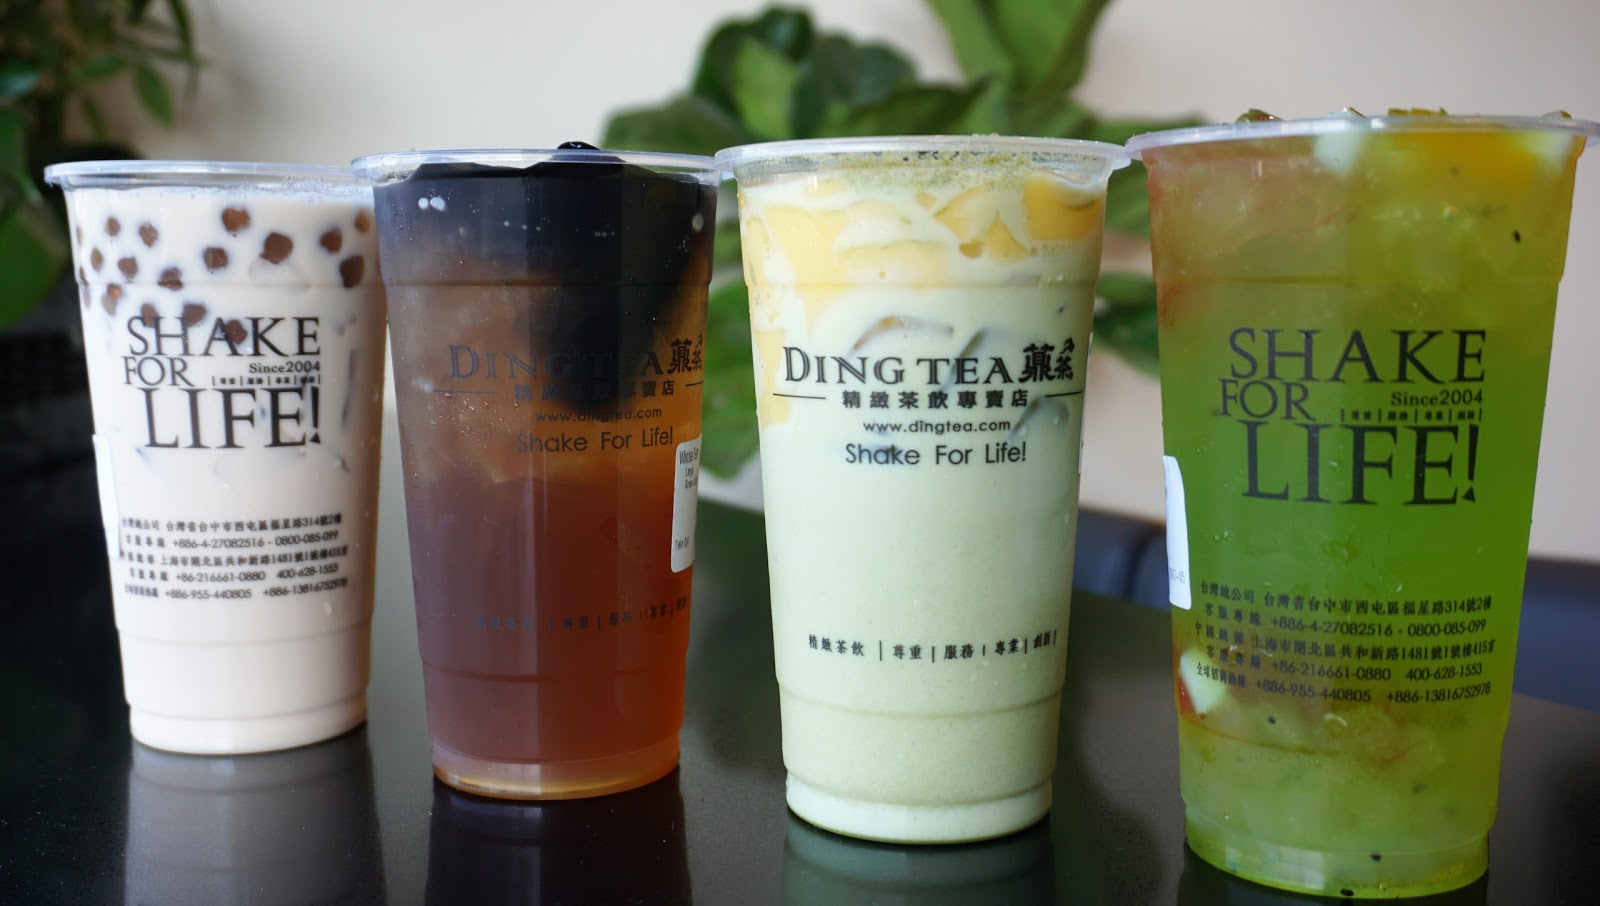 [GIVEAWAY] Ding Tea By Phybie Is Officially Open In Huntington Beach